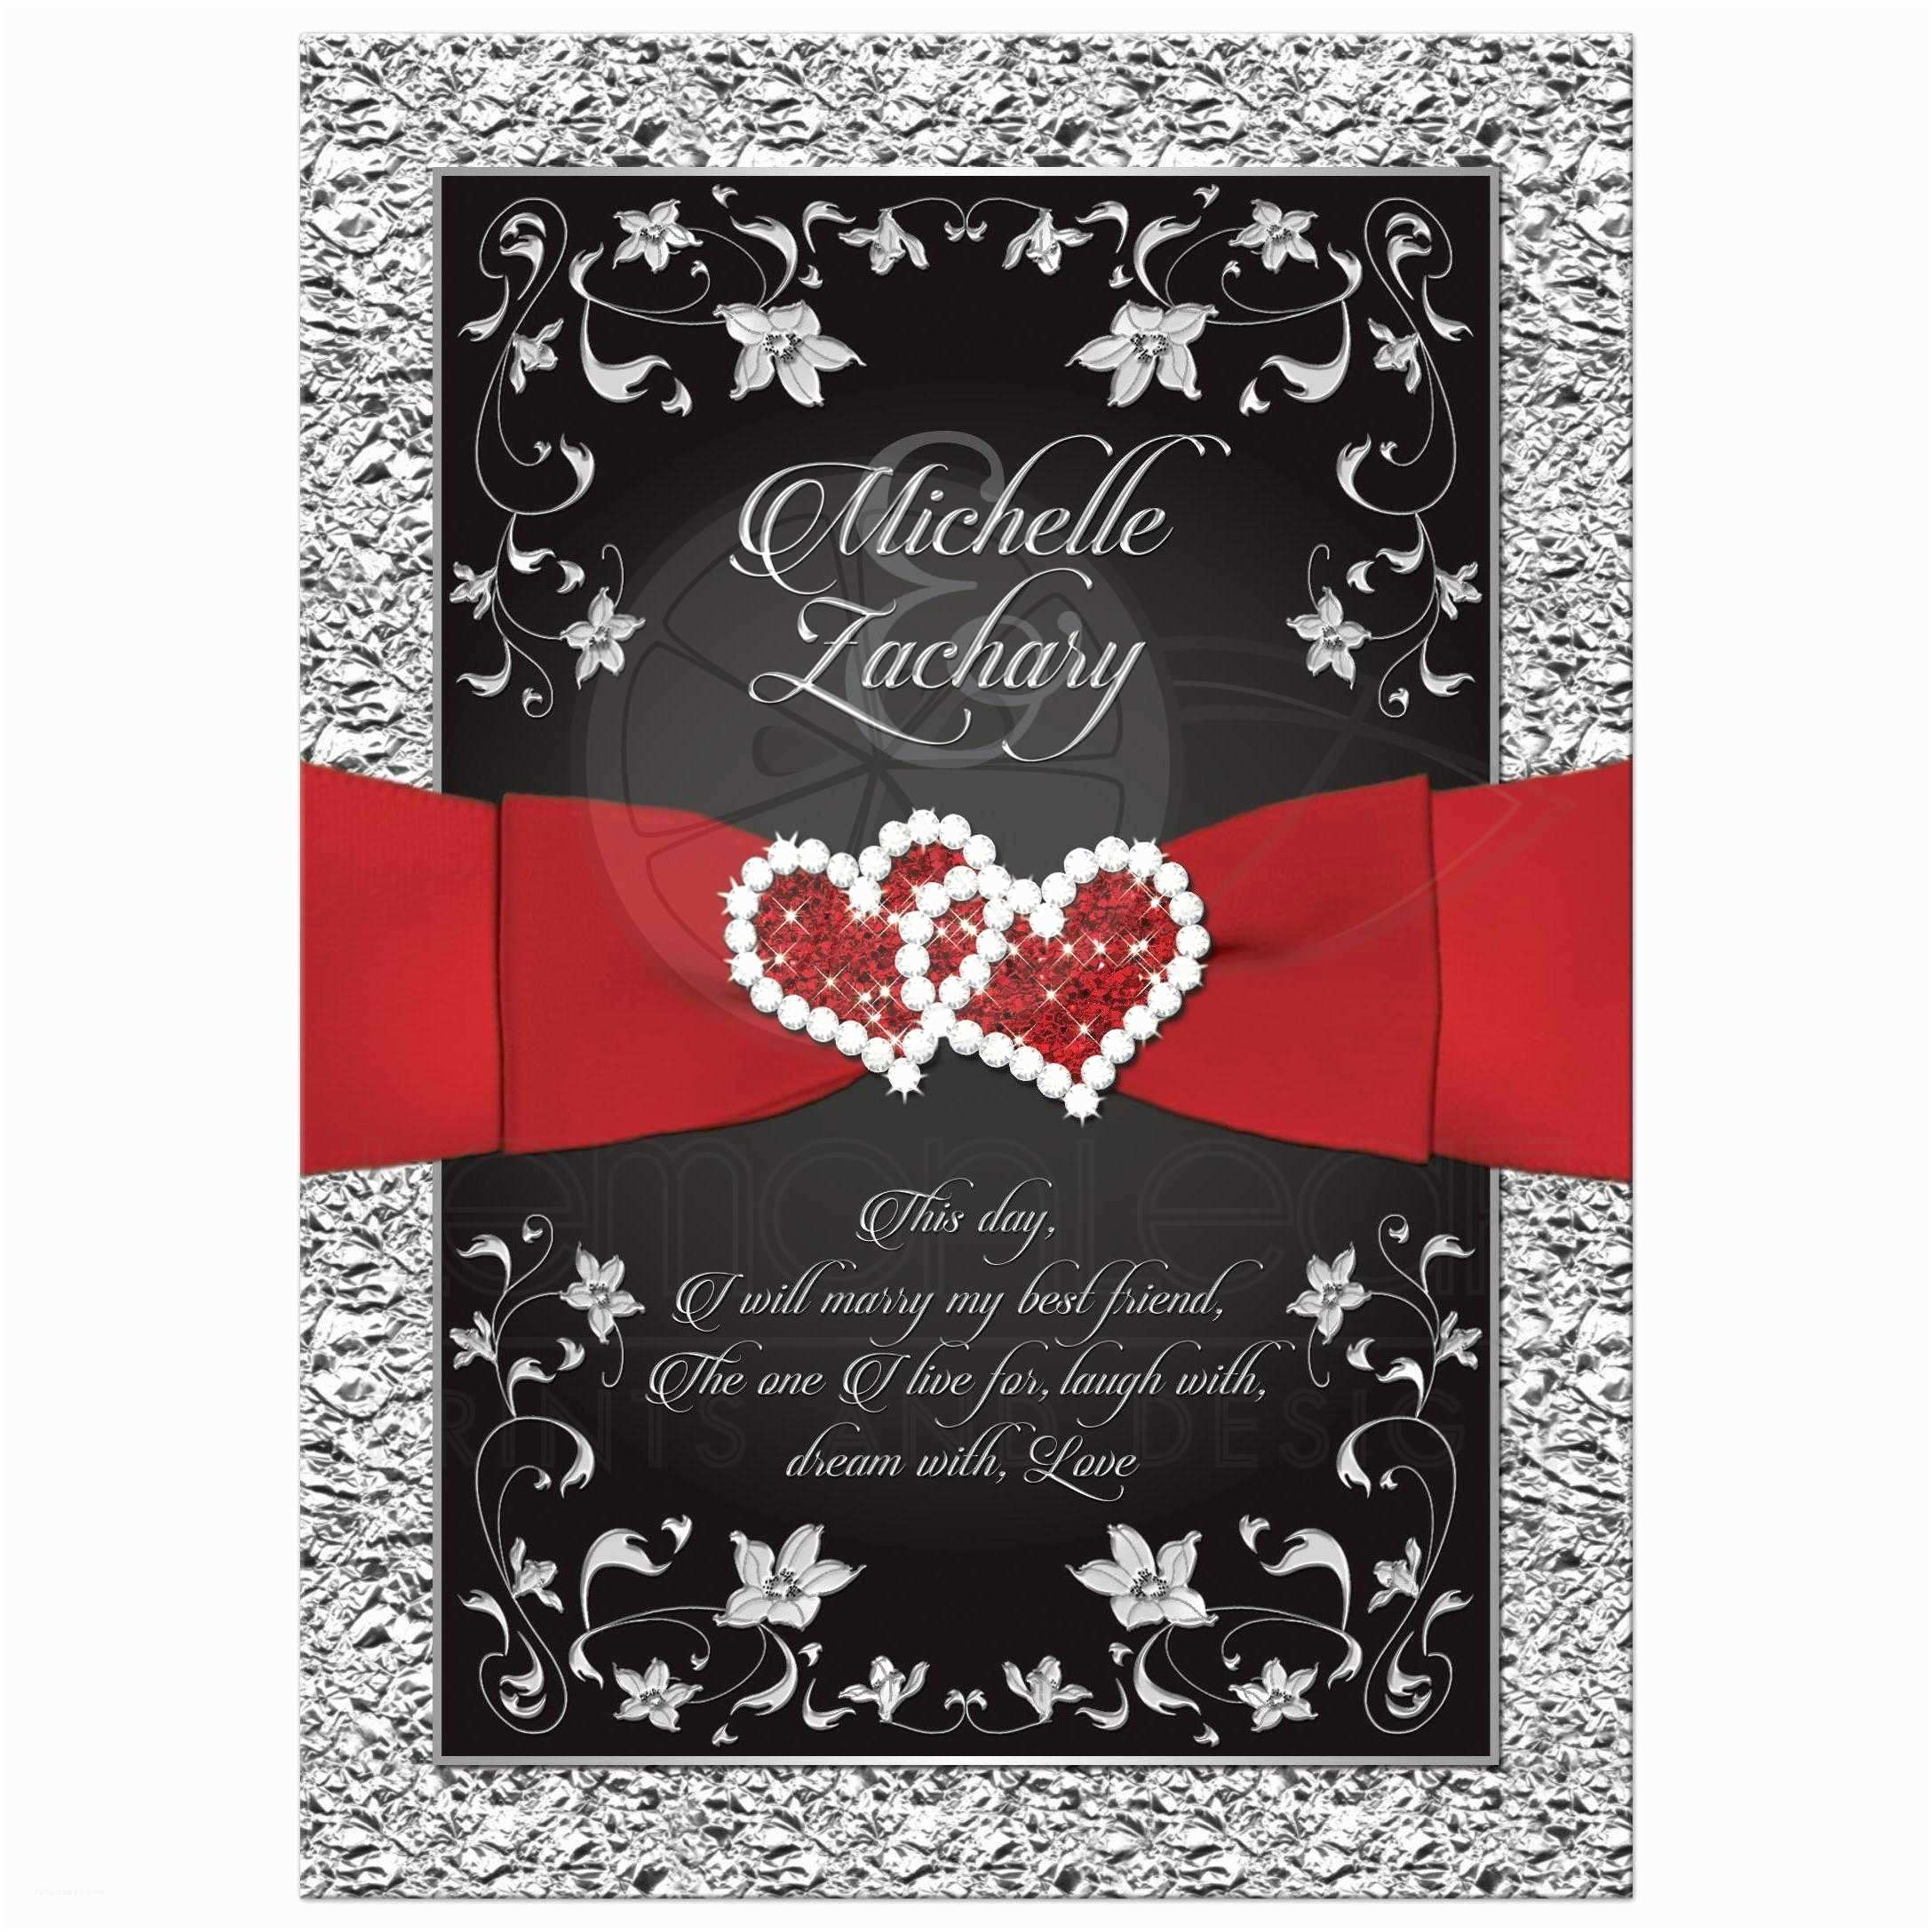 Red and Black Wedding Invitations Wedding Invitation Black Red Silver Floral